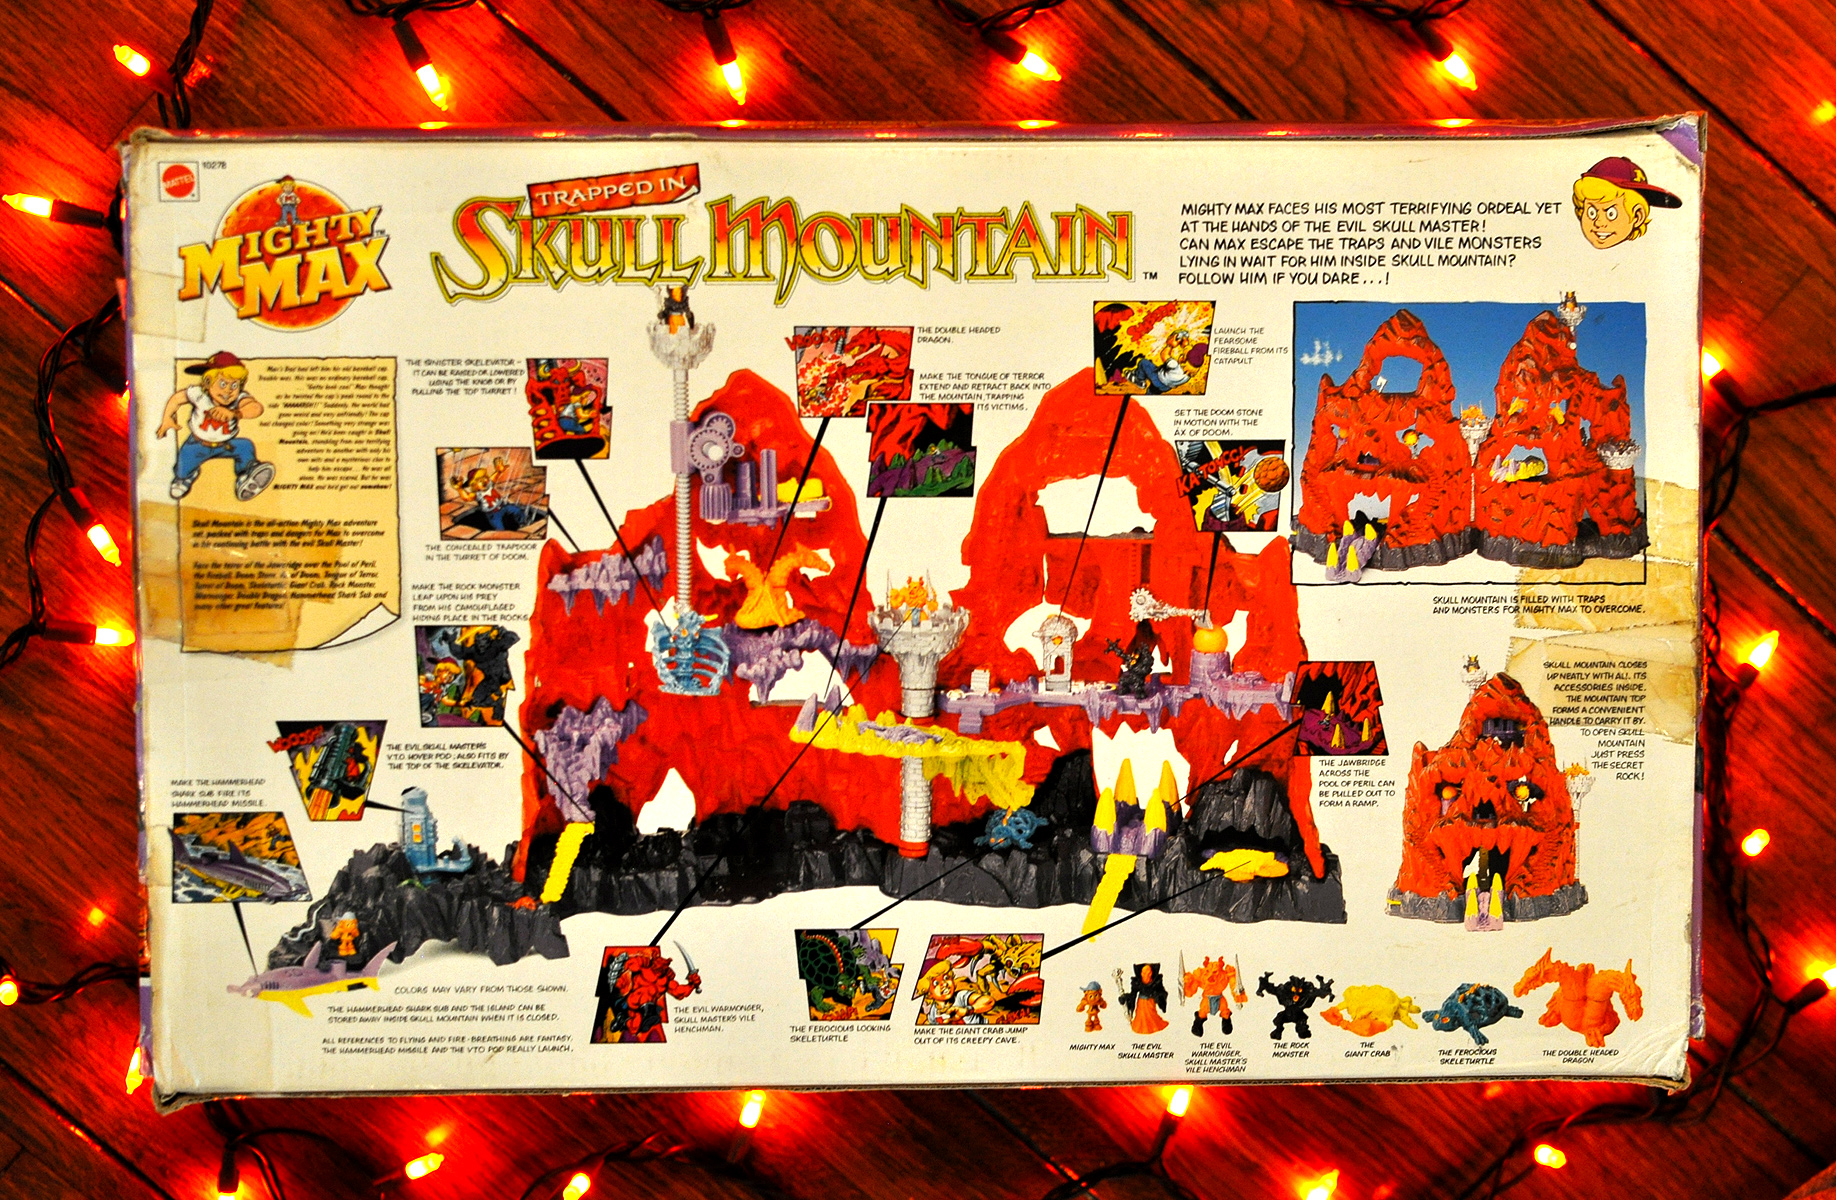 mighty-max-trapped-in-skull-mountain-playset-3-large.jpg